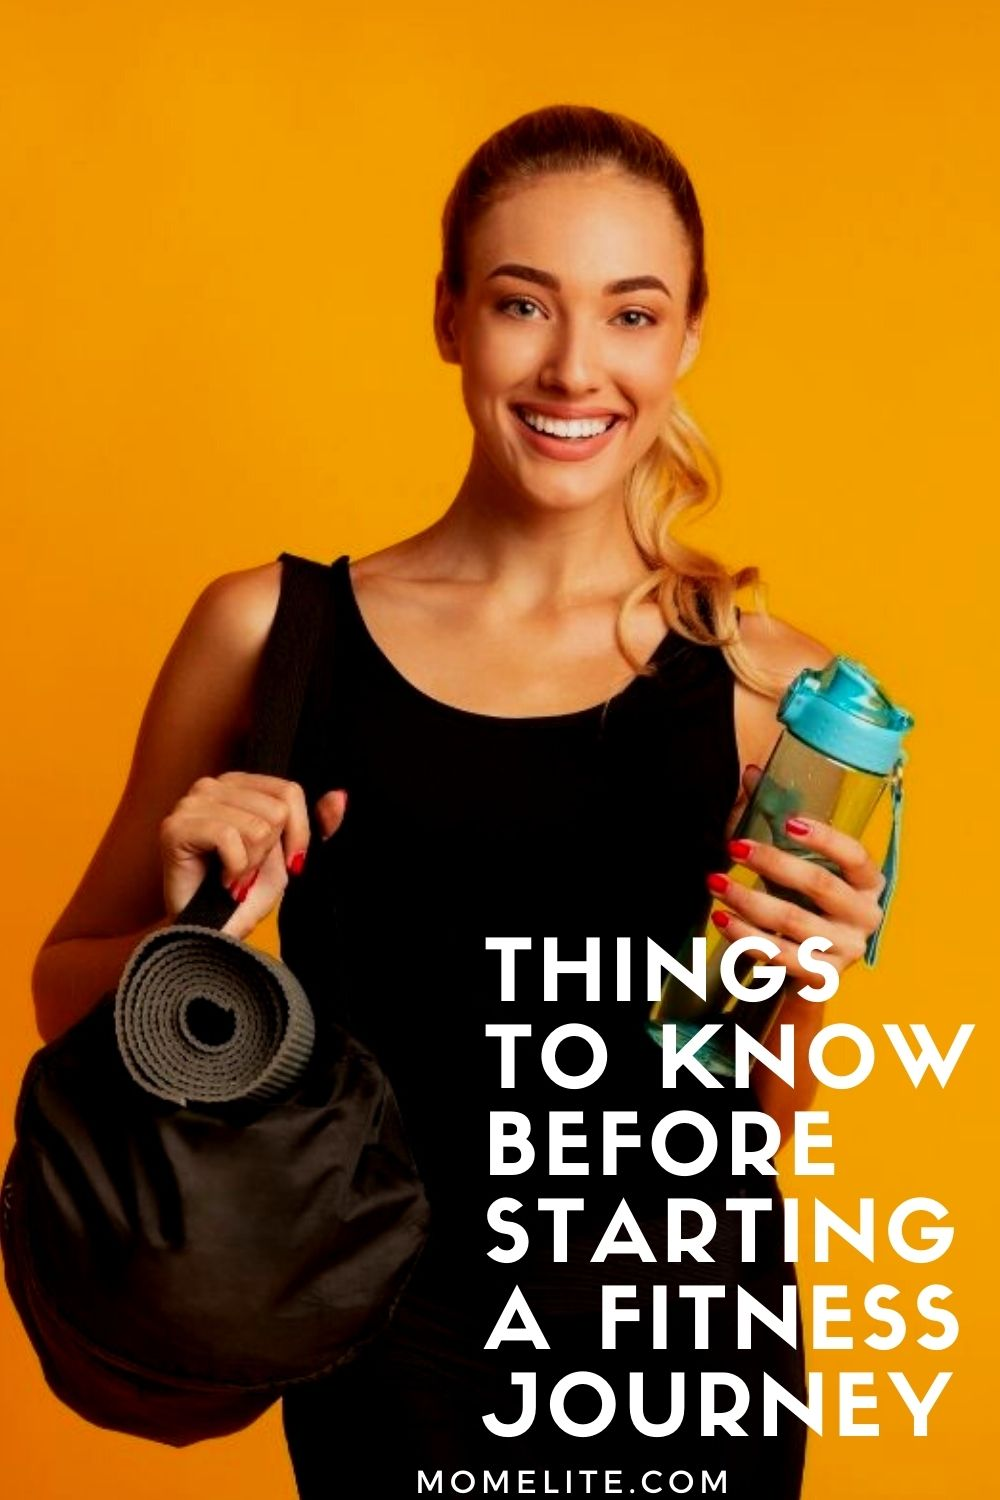 THINGS TO KNOW BEFORE STARTING A FITNESS JOURNEY